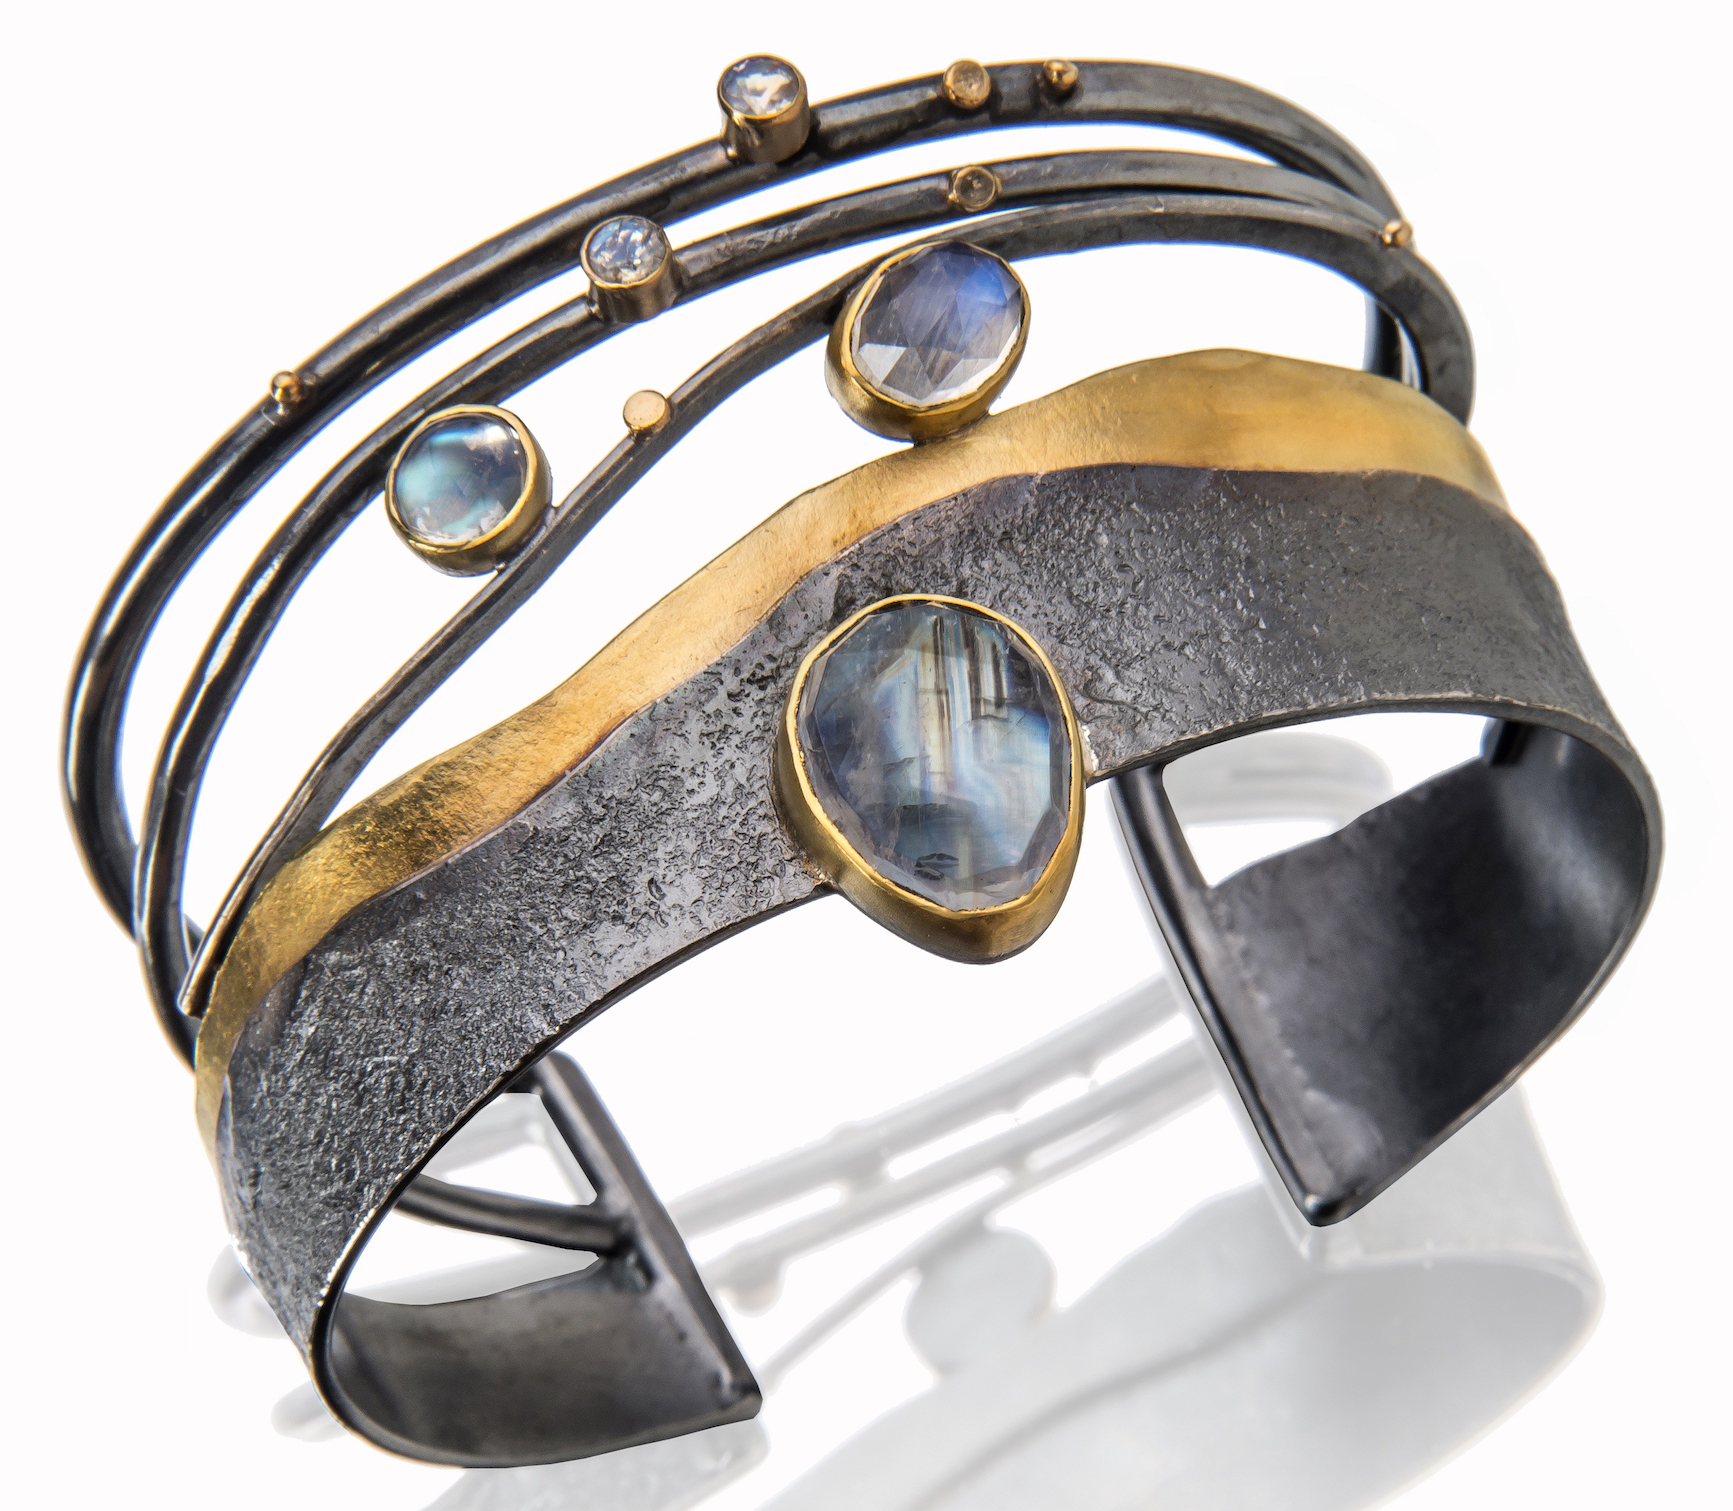 Sydney Lynch moonstone Reef cuff bracelet | JCK On Your Market